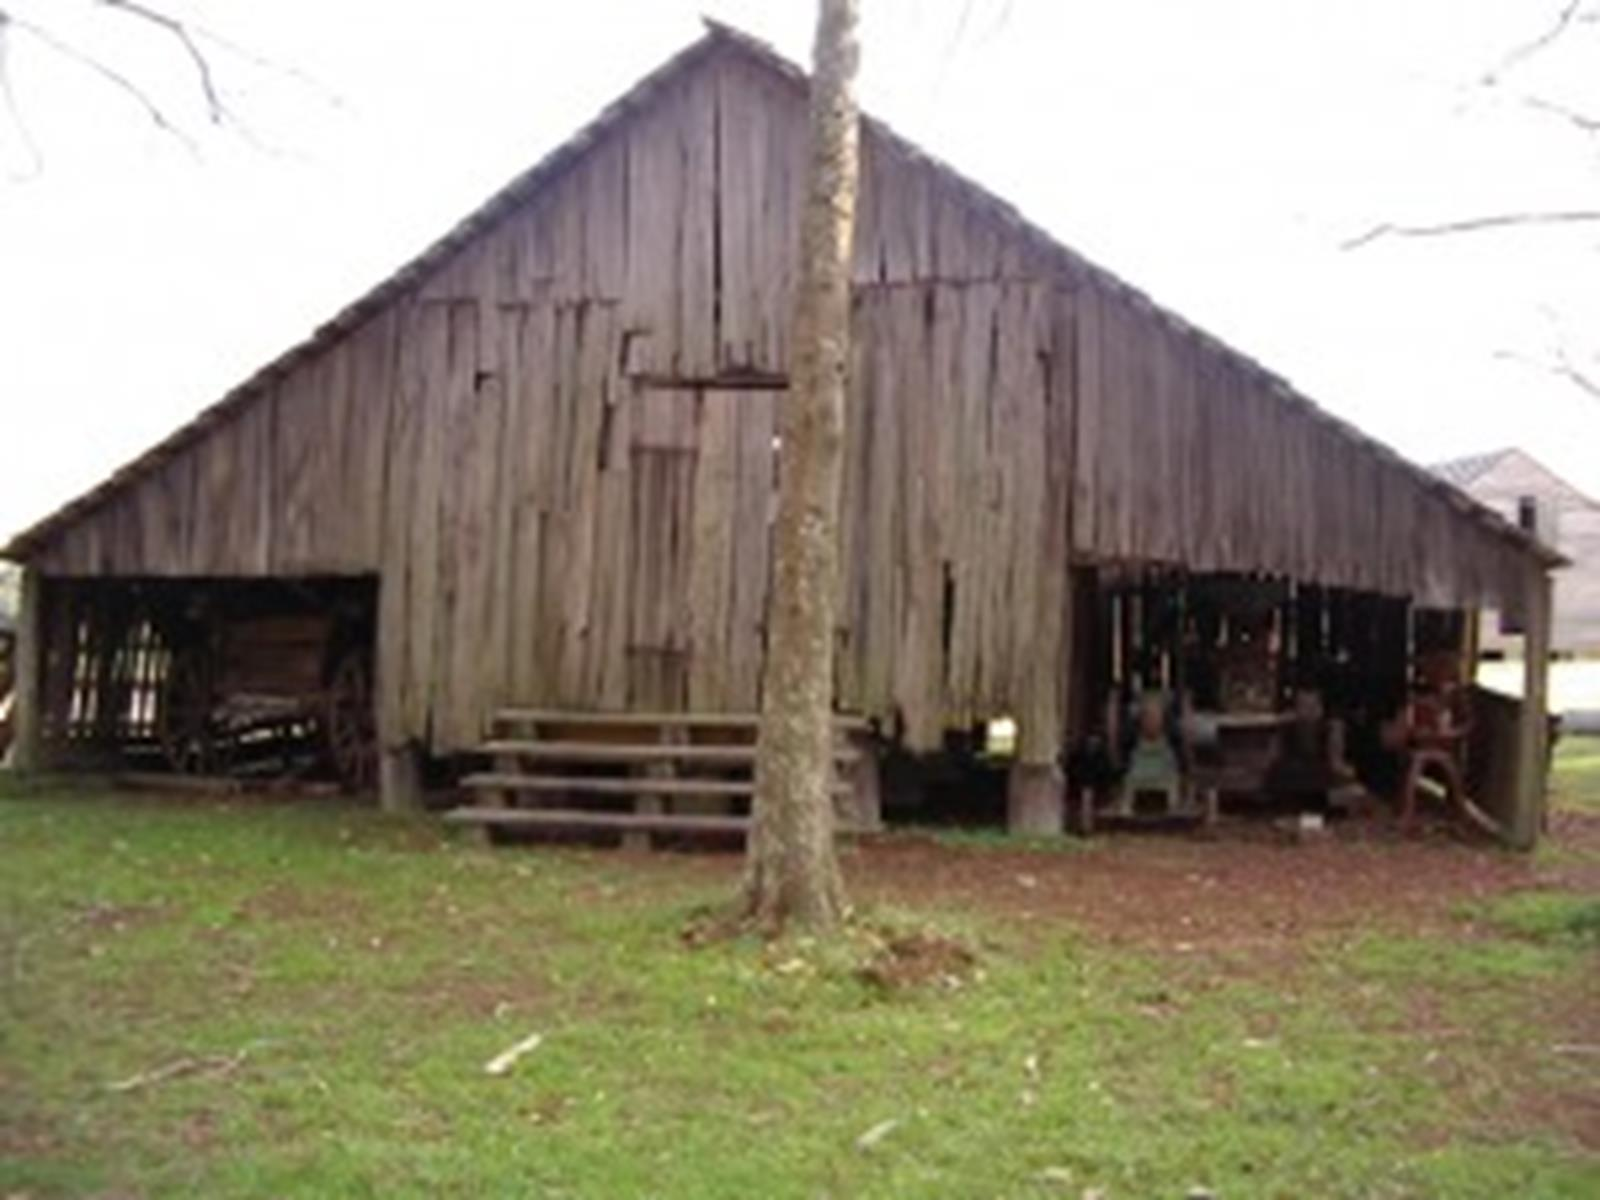 Trip Barn at the LSU Rural Life Museum